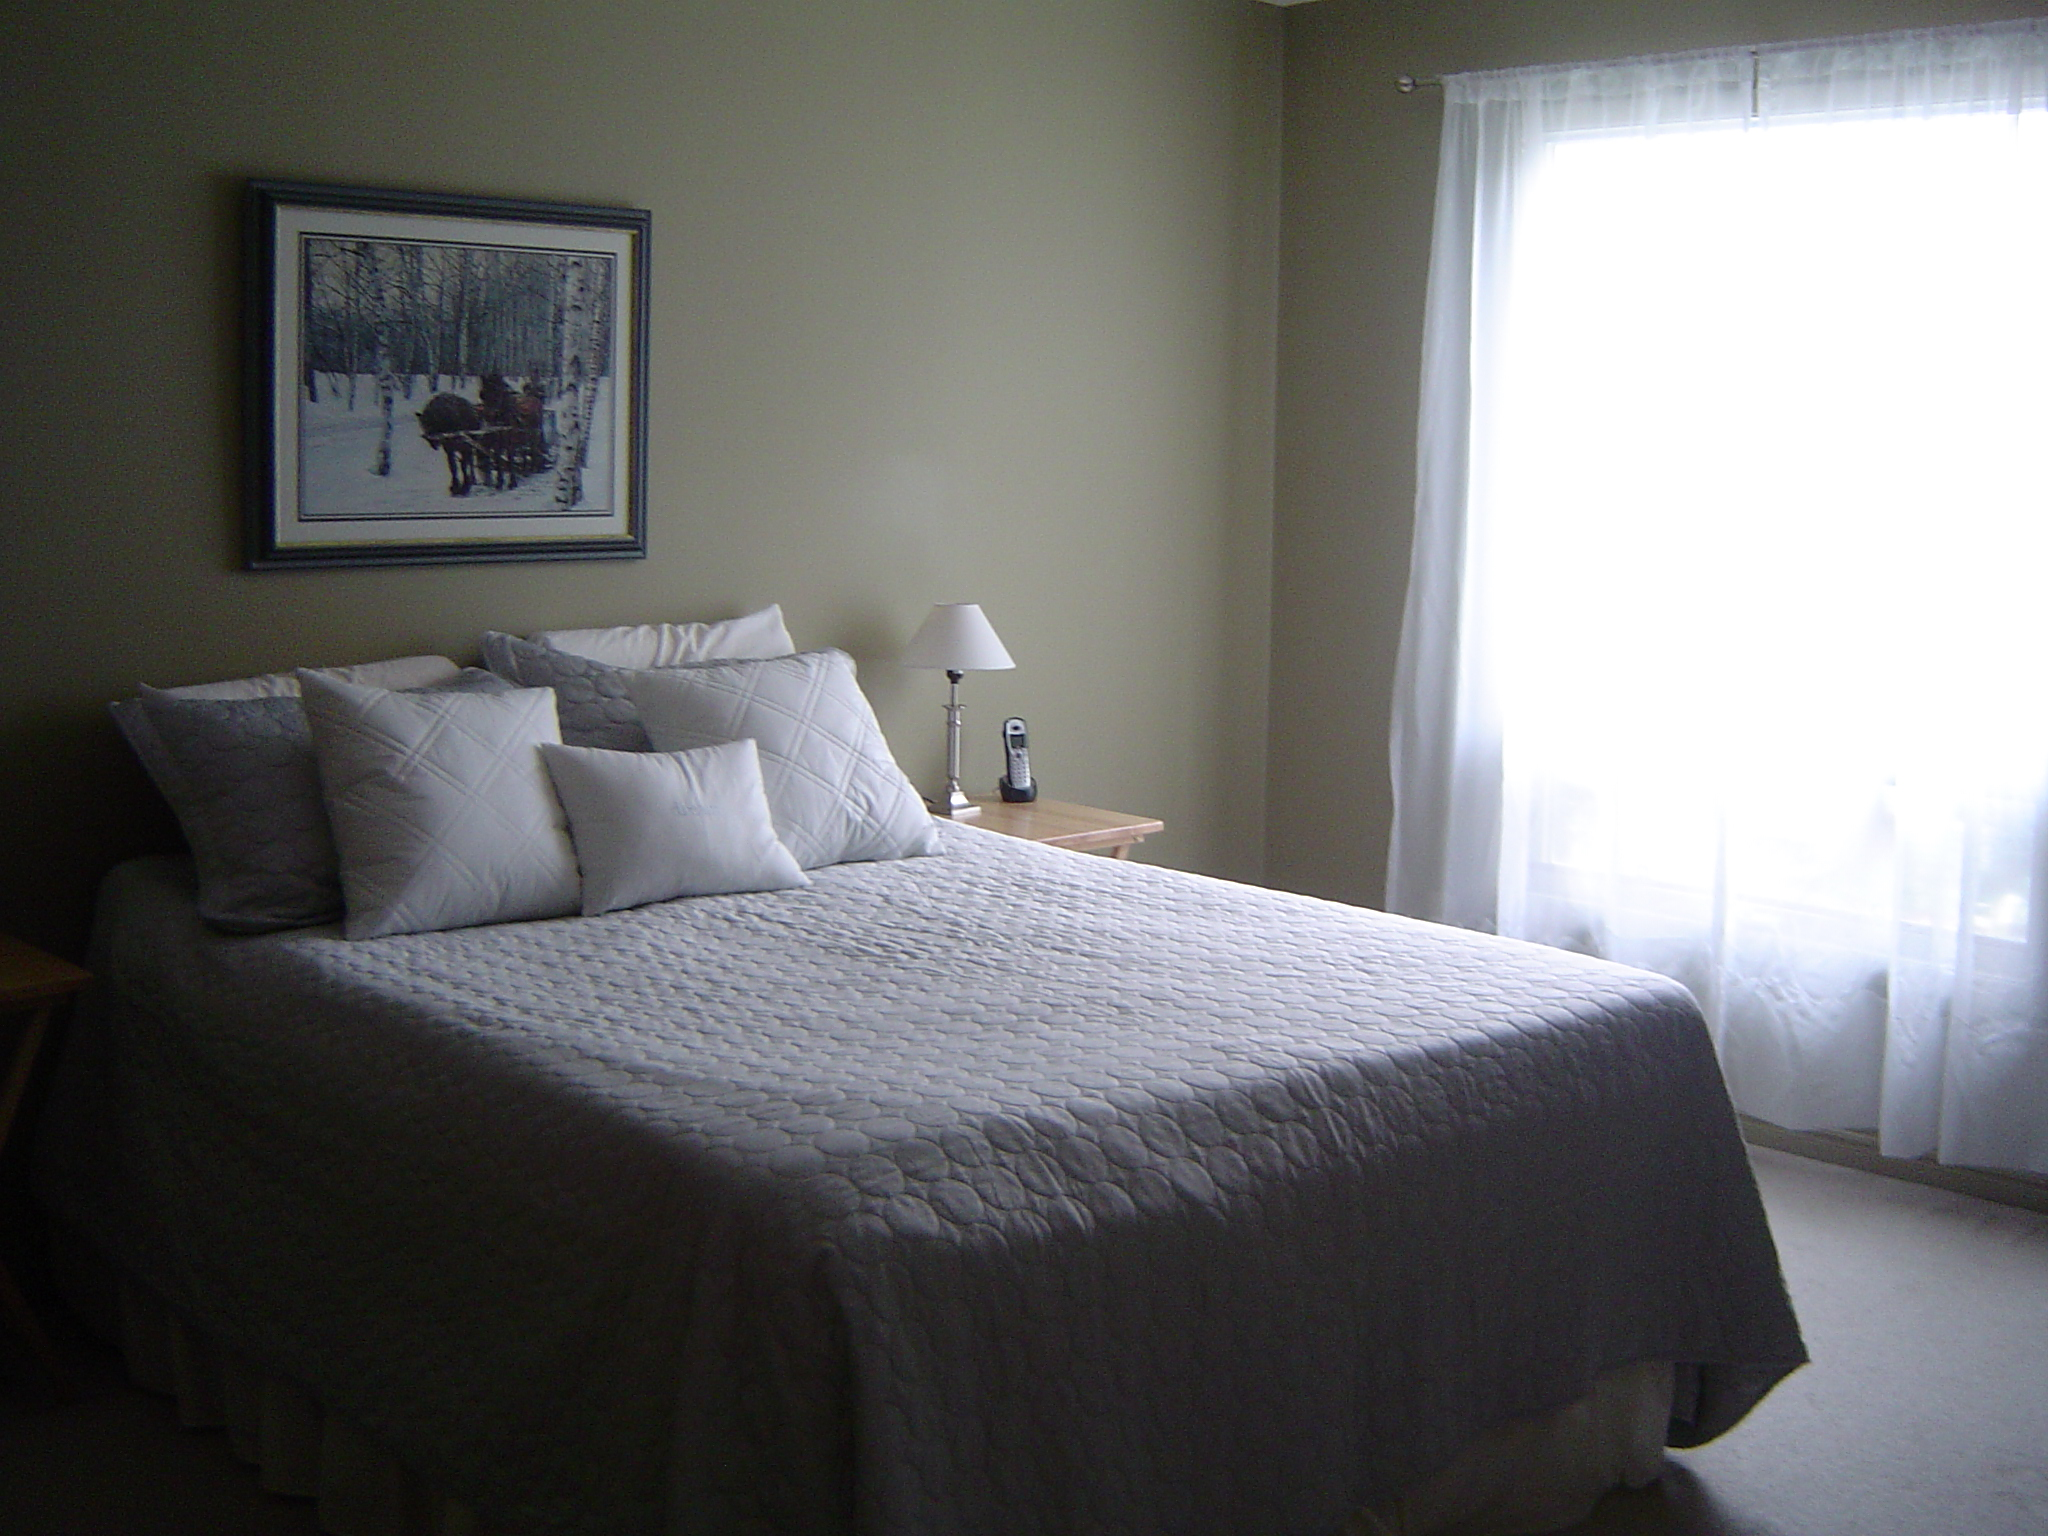 Upstairs are 3 nice sized bedrooms, the master is large enough for your king size bed